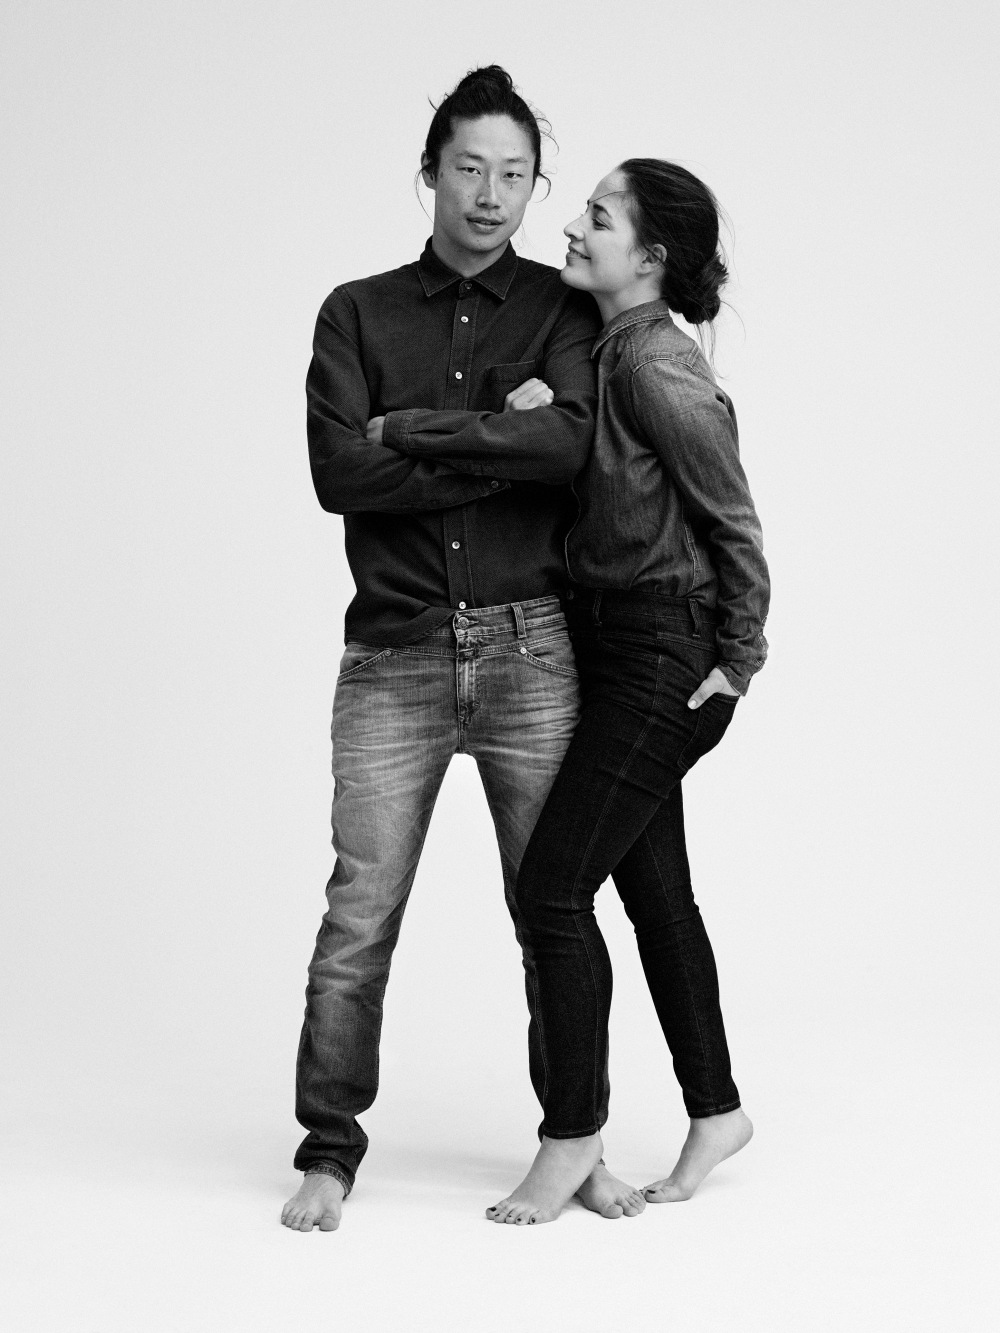 Kristina Pasuna and Bent Lee - in Pedal Slim - Closed Sales Agents from Copenhagen